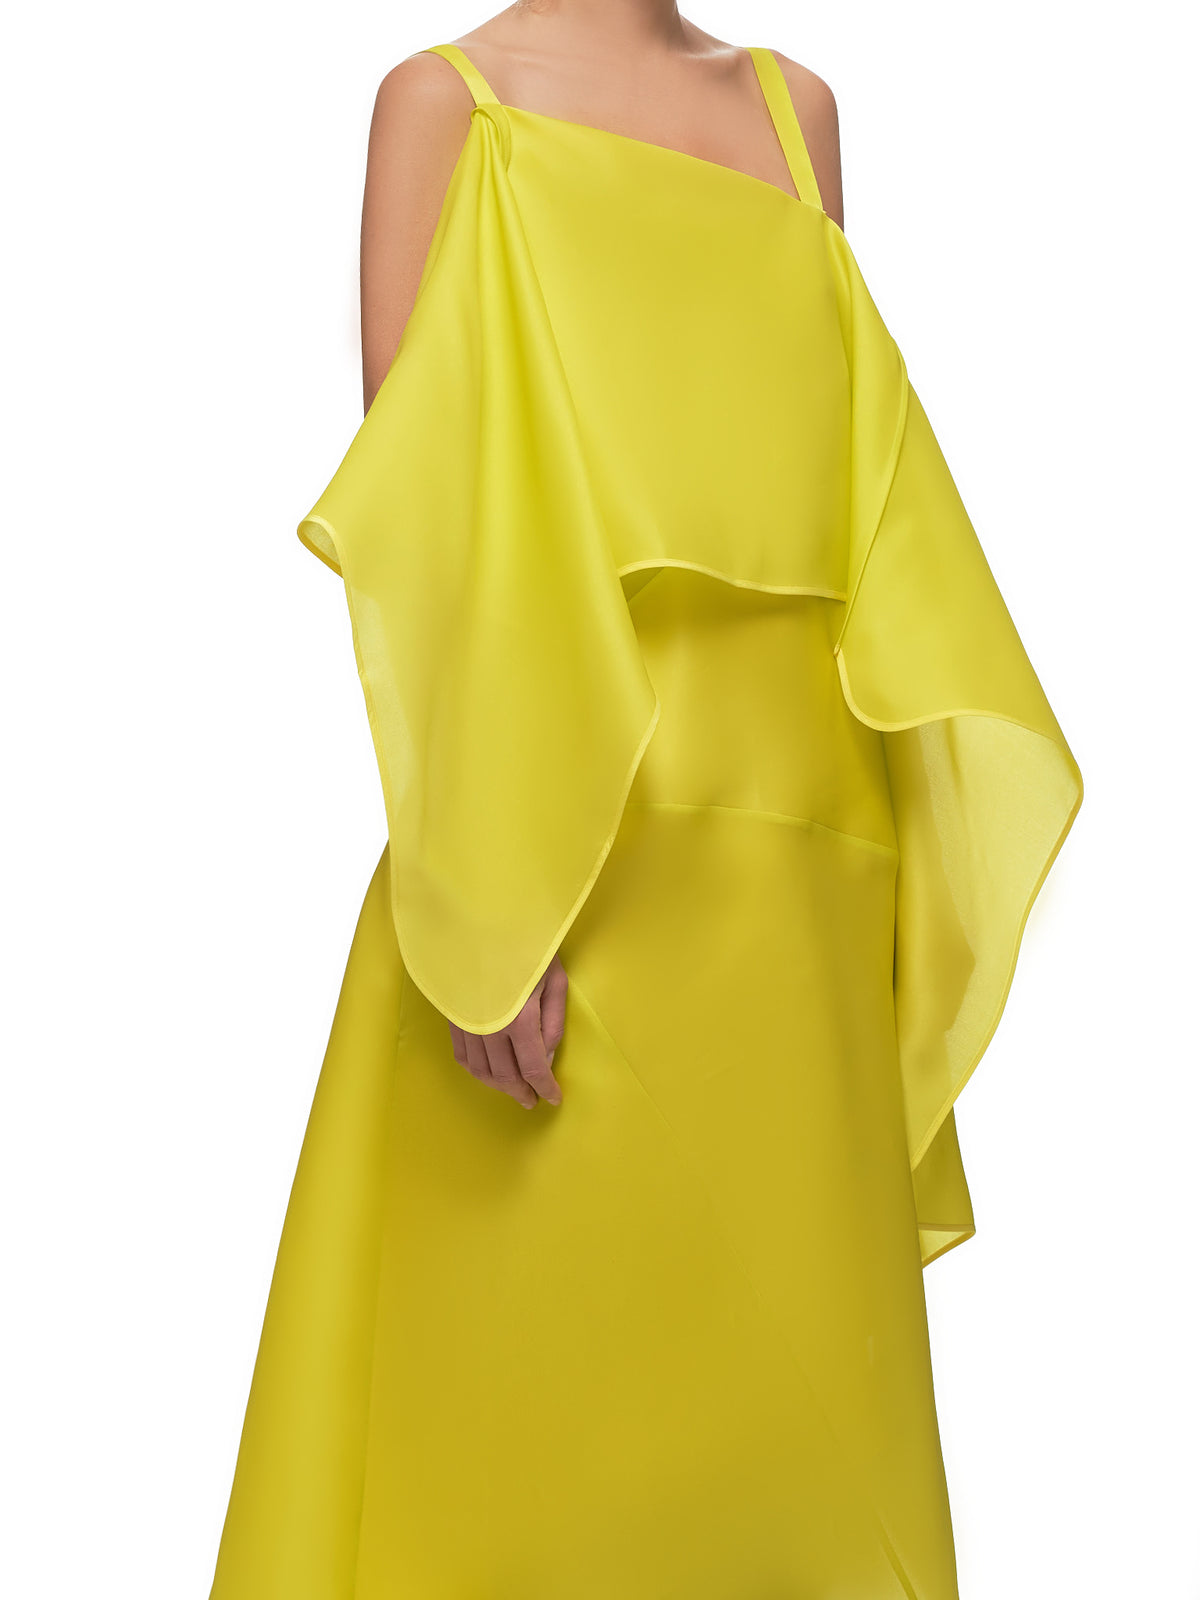 Nina Ricci Dress - Hlorenzo Detail 2